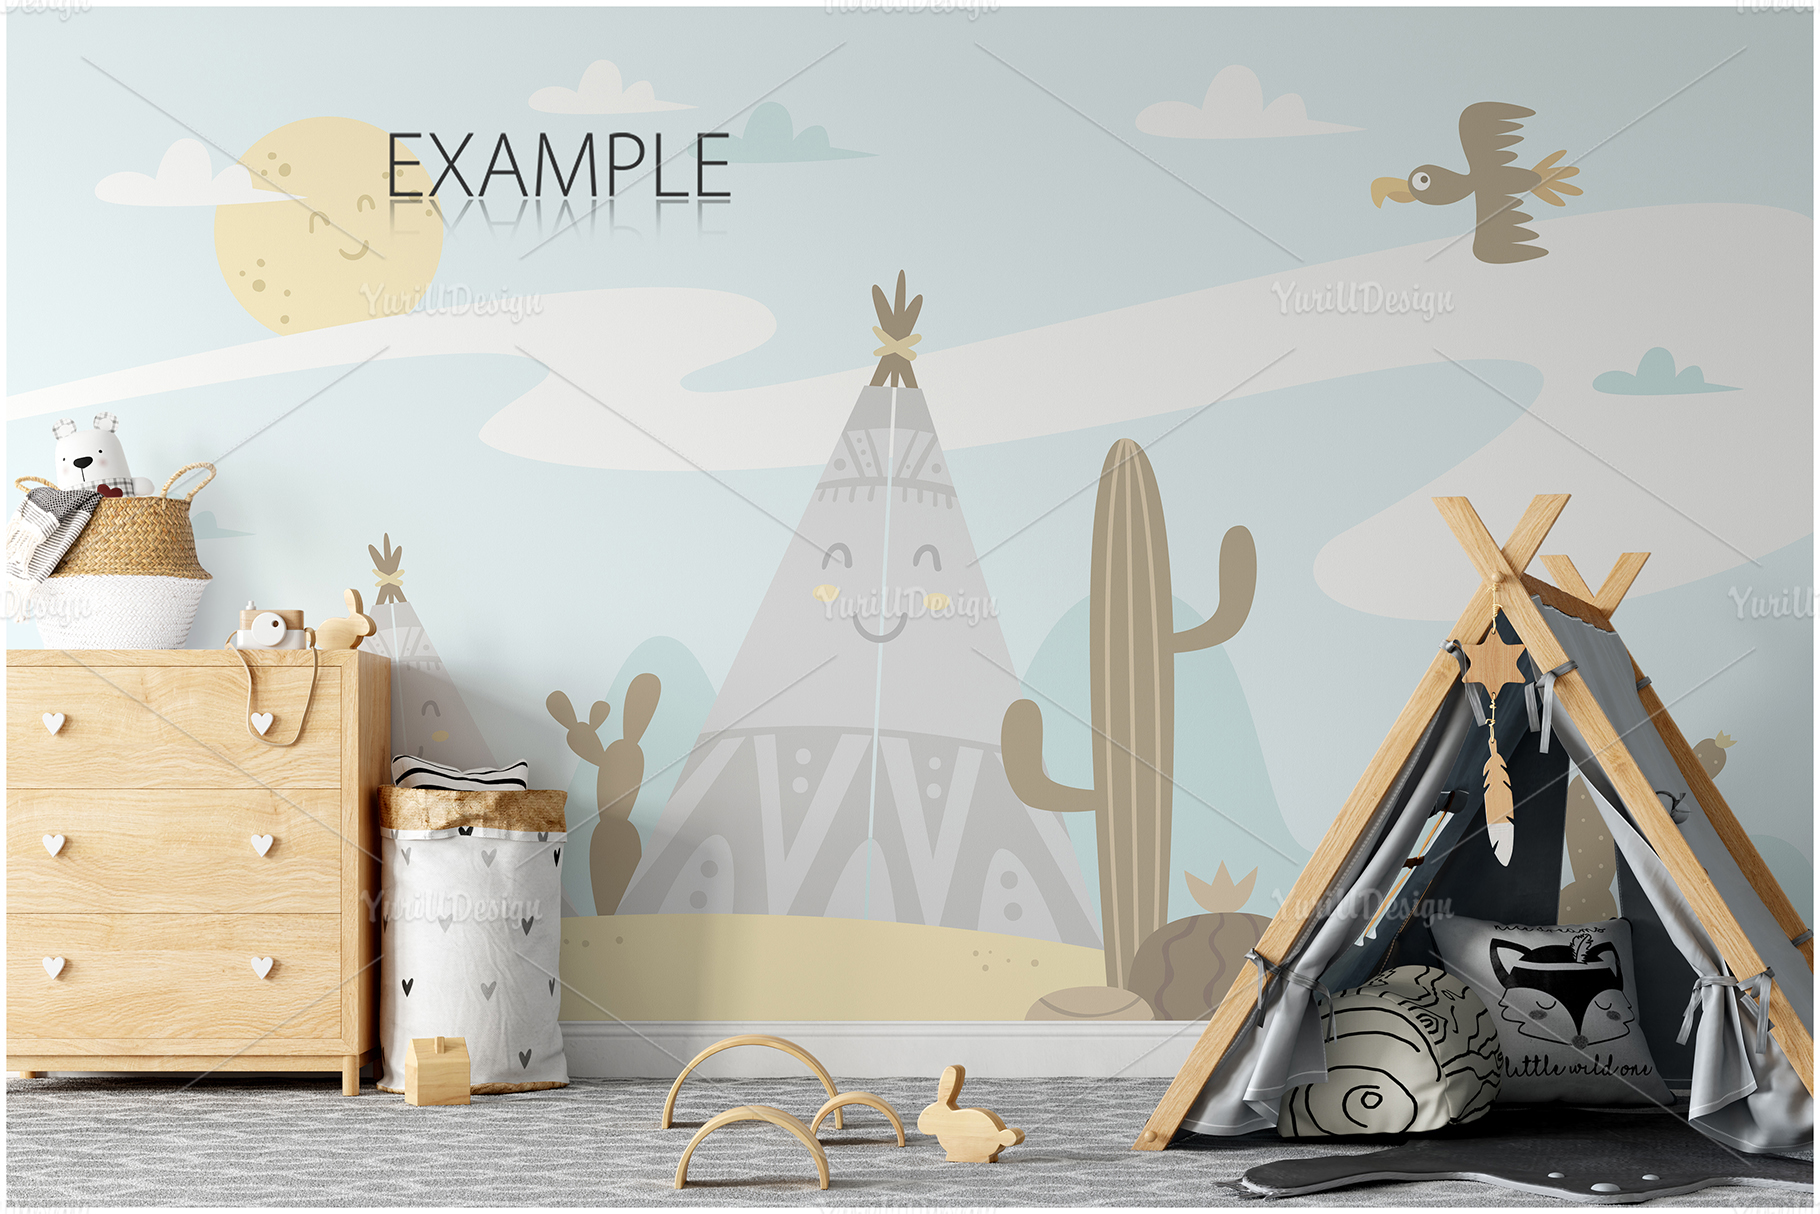 Kids Frames & Wall Mockup Bundle - 5 example image 7